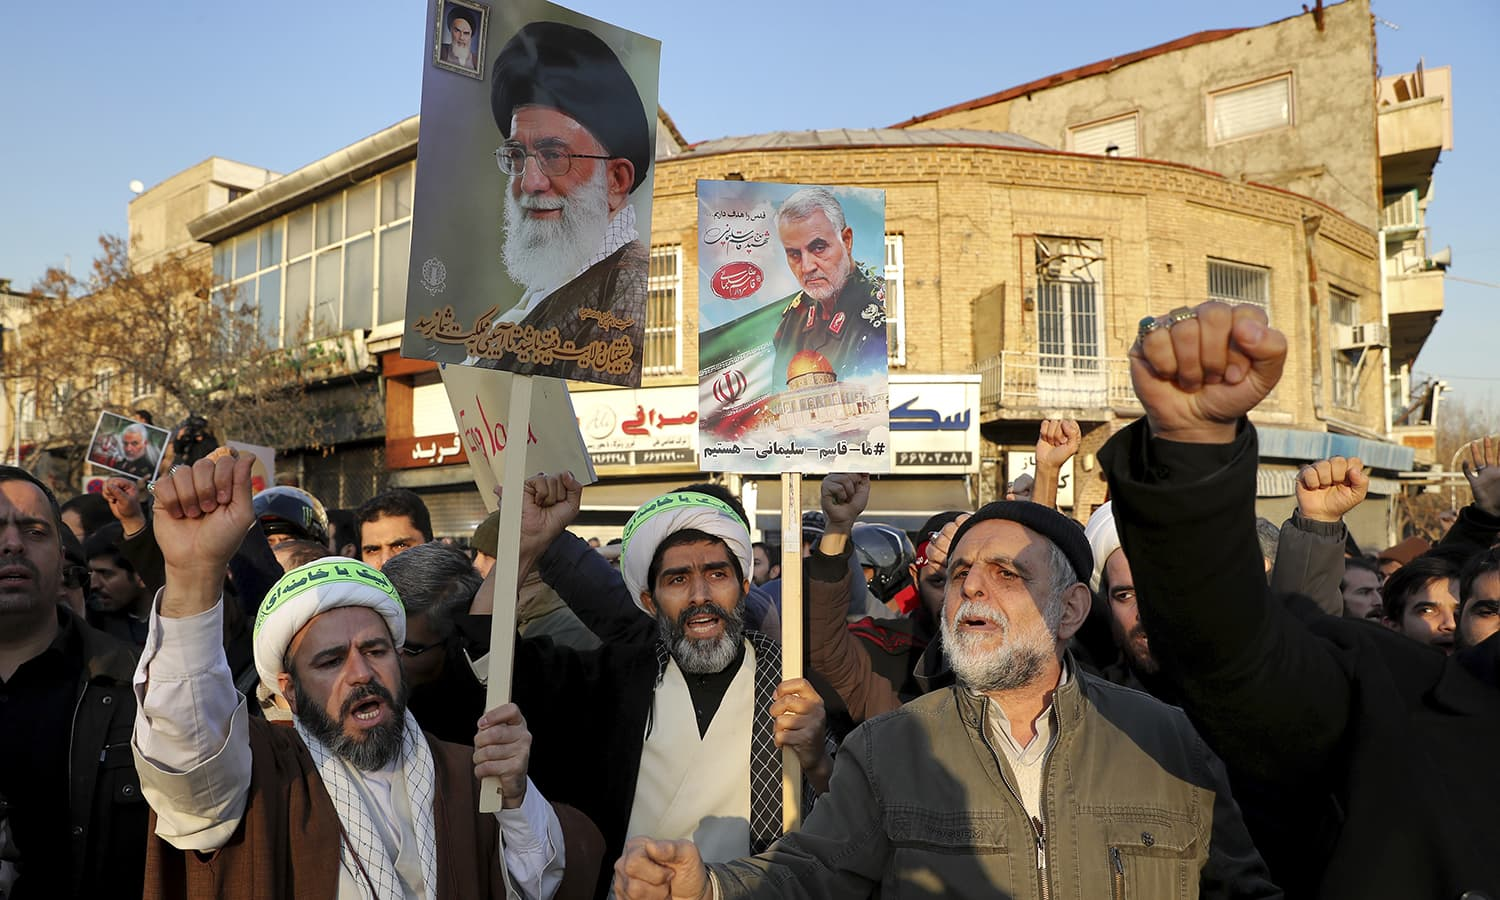 Hardline protesters chant slogans while holding up a poster of Gen Qassem Soleimani and Supreme Leader Ayatollah Ali Khamenei, during a demonstration in front of the British Embassy in Tehran. — AP/File